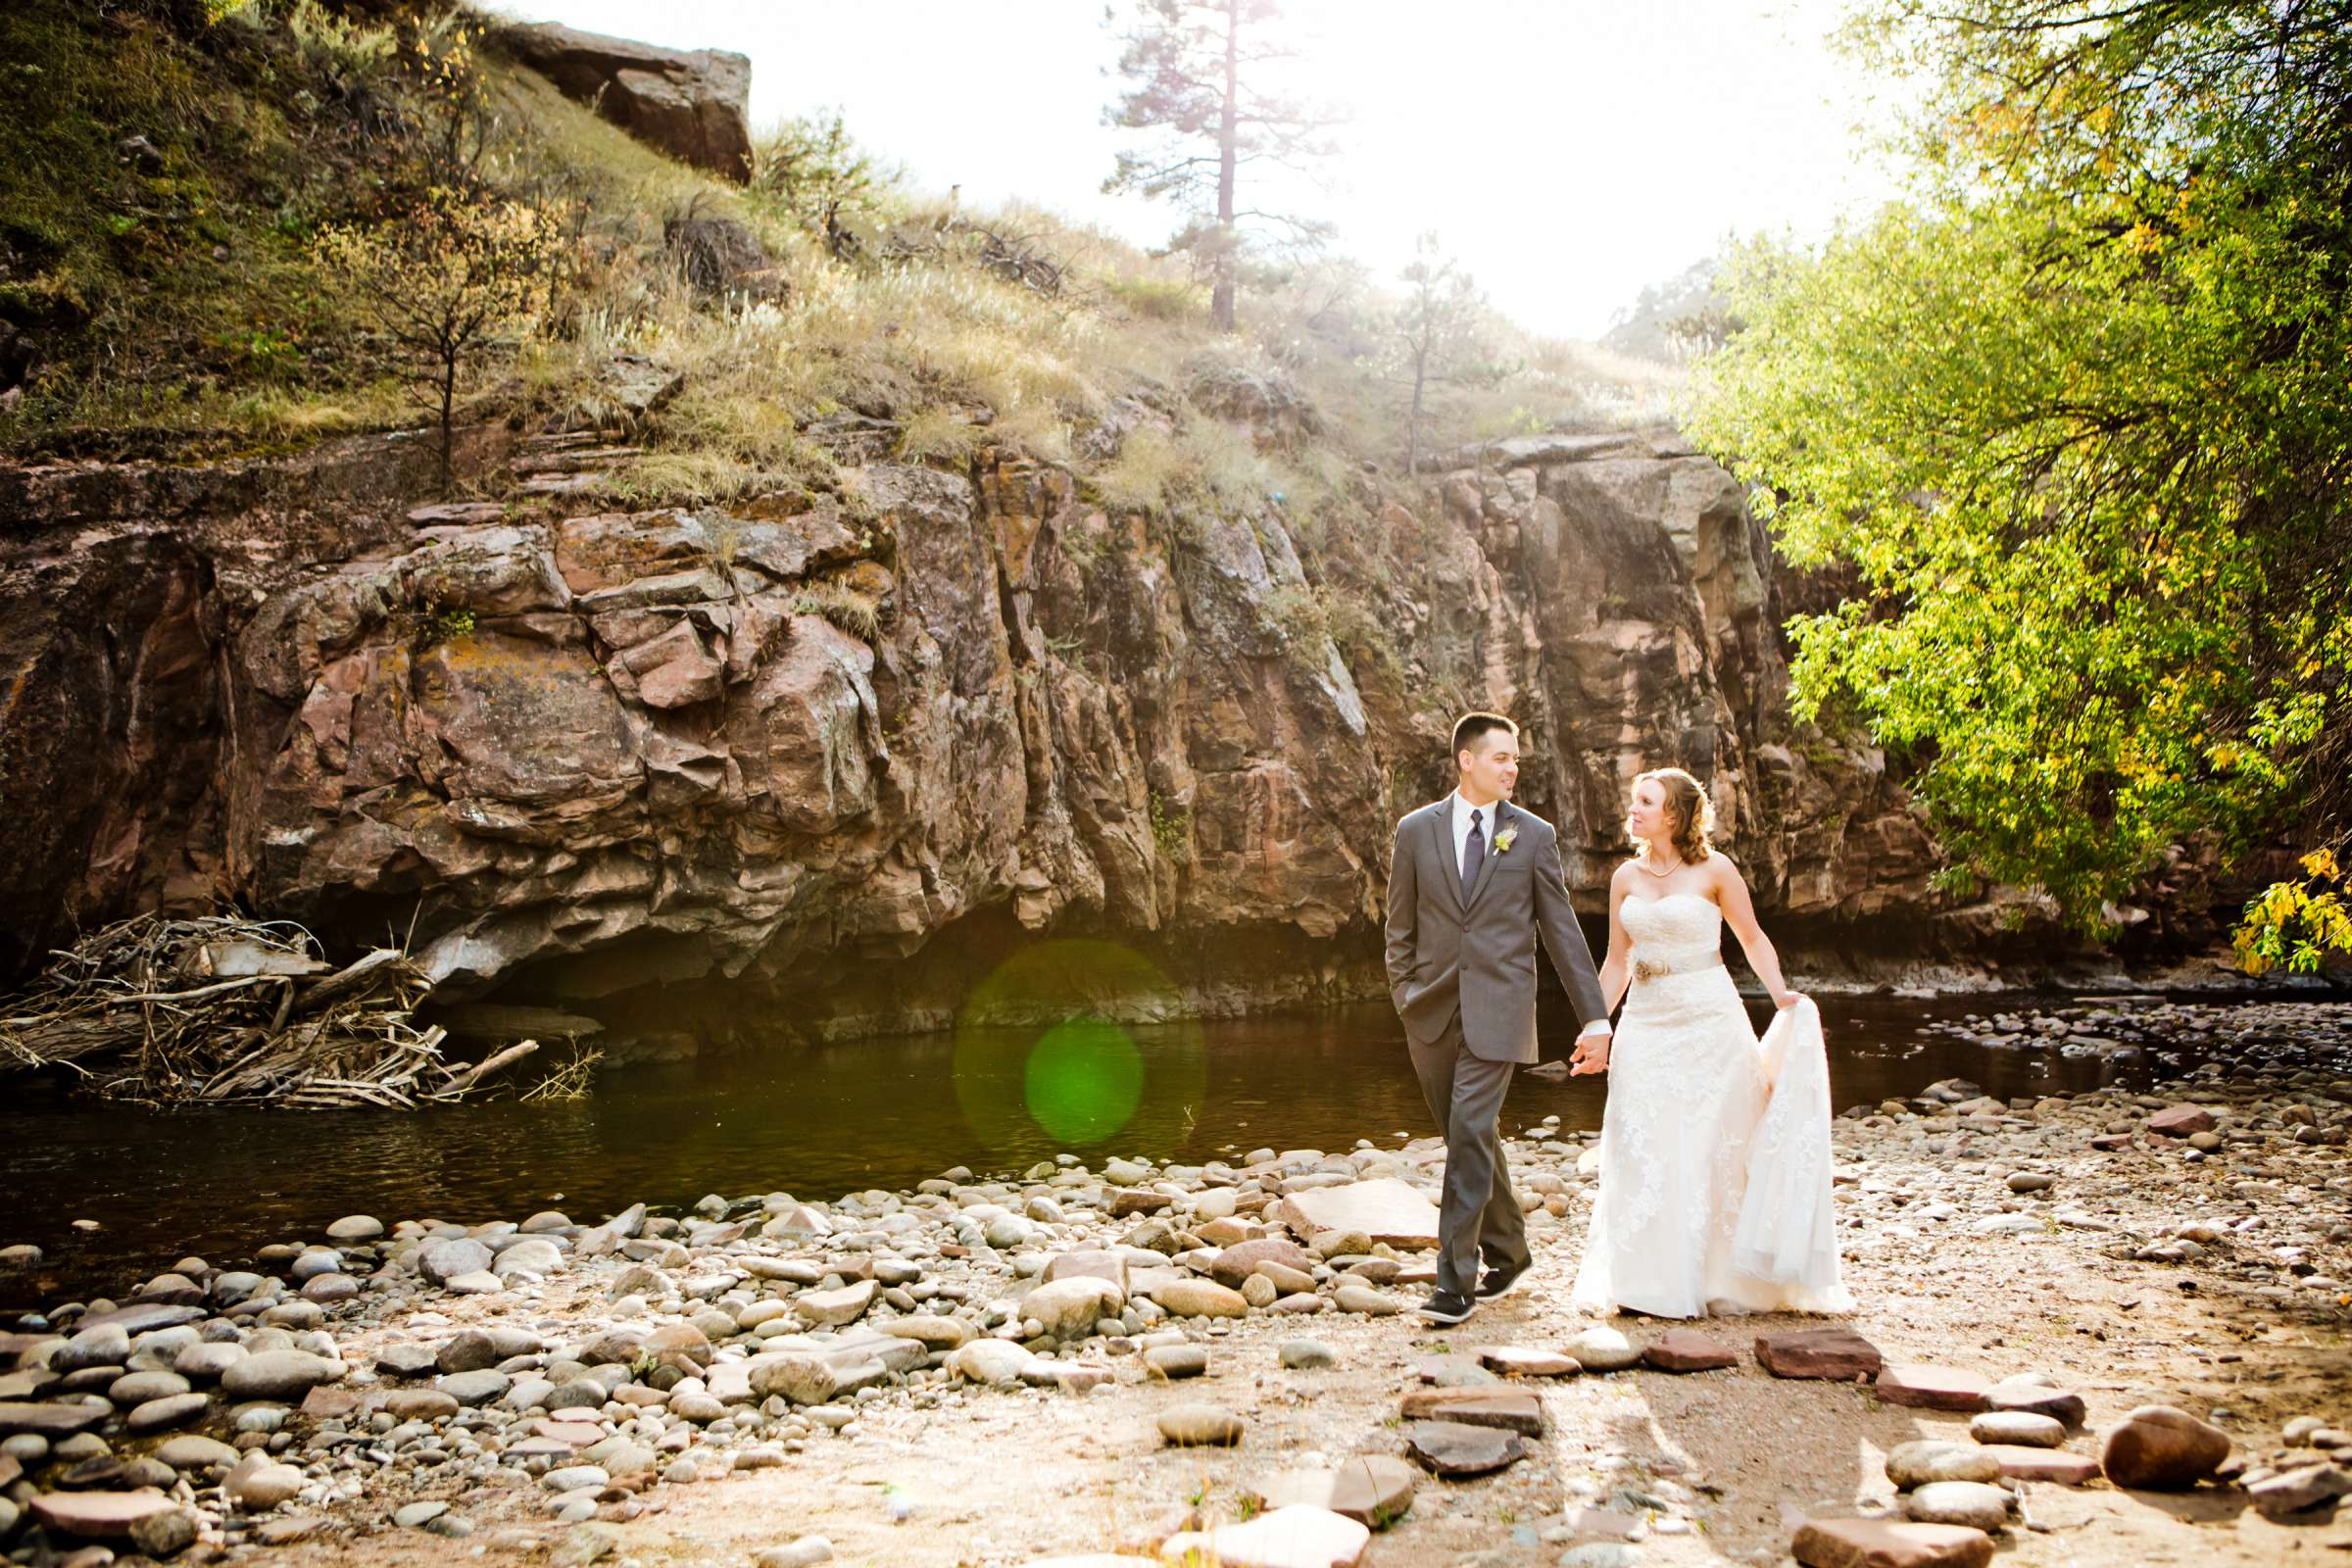 The Lyons Farmette Wedding, Tiffany and J. Travis Wedding Photo #3 by True Photography